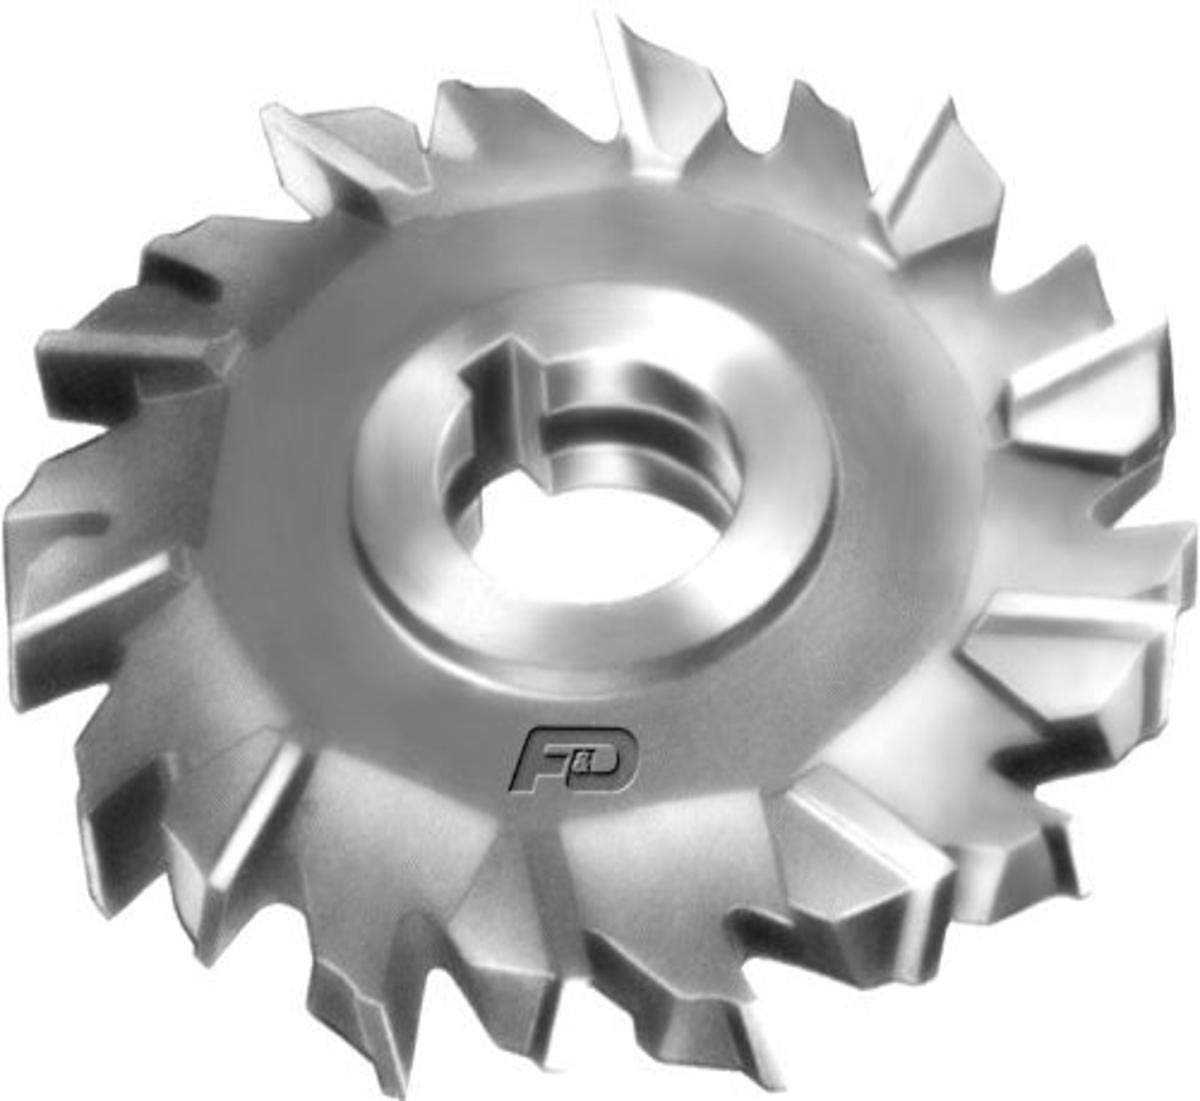 F&D Tool Company 11267-A564 Staggered Tooth Side Milling Cutter, High Speed Steel, 6